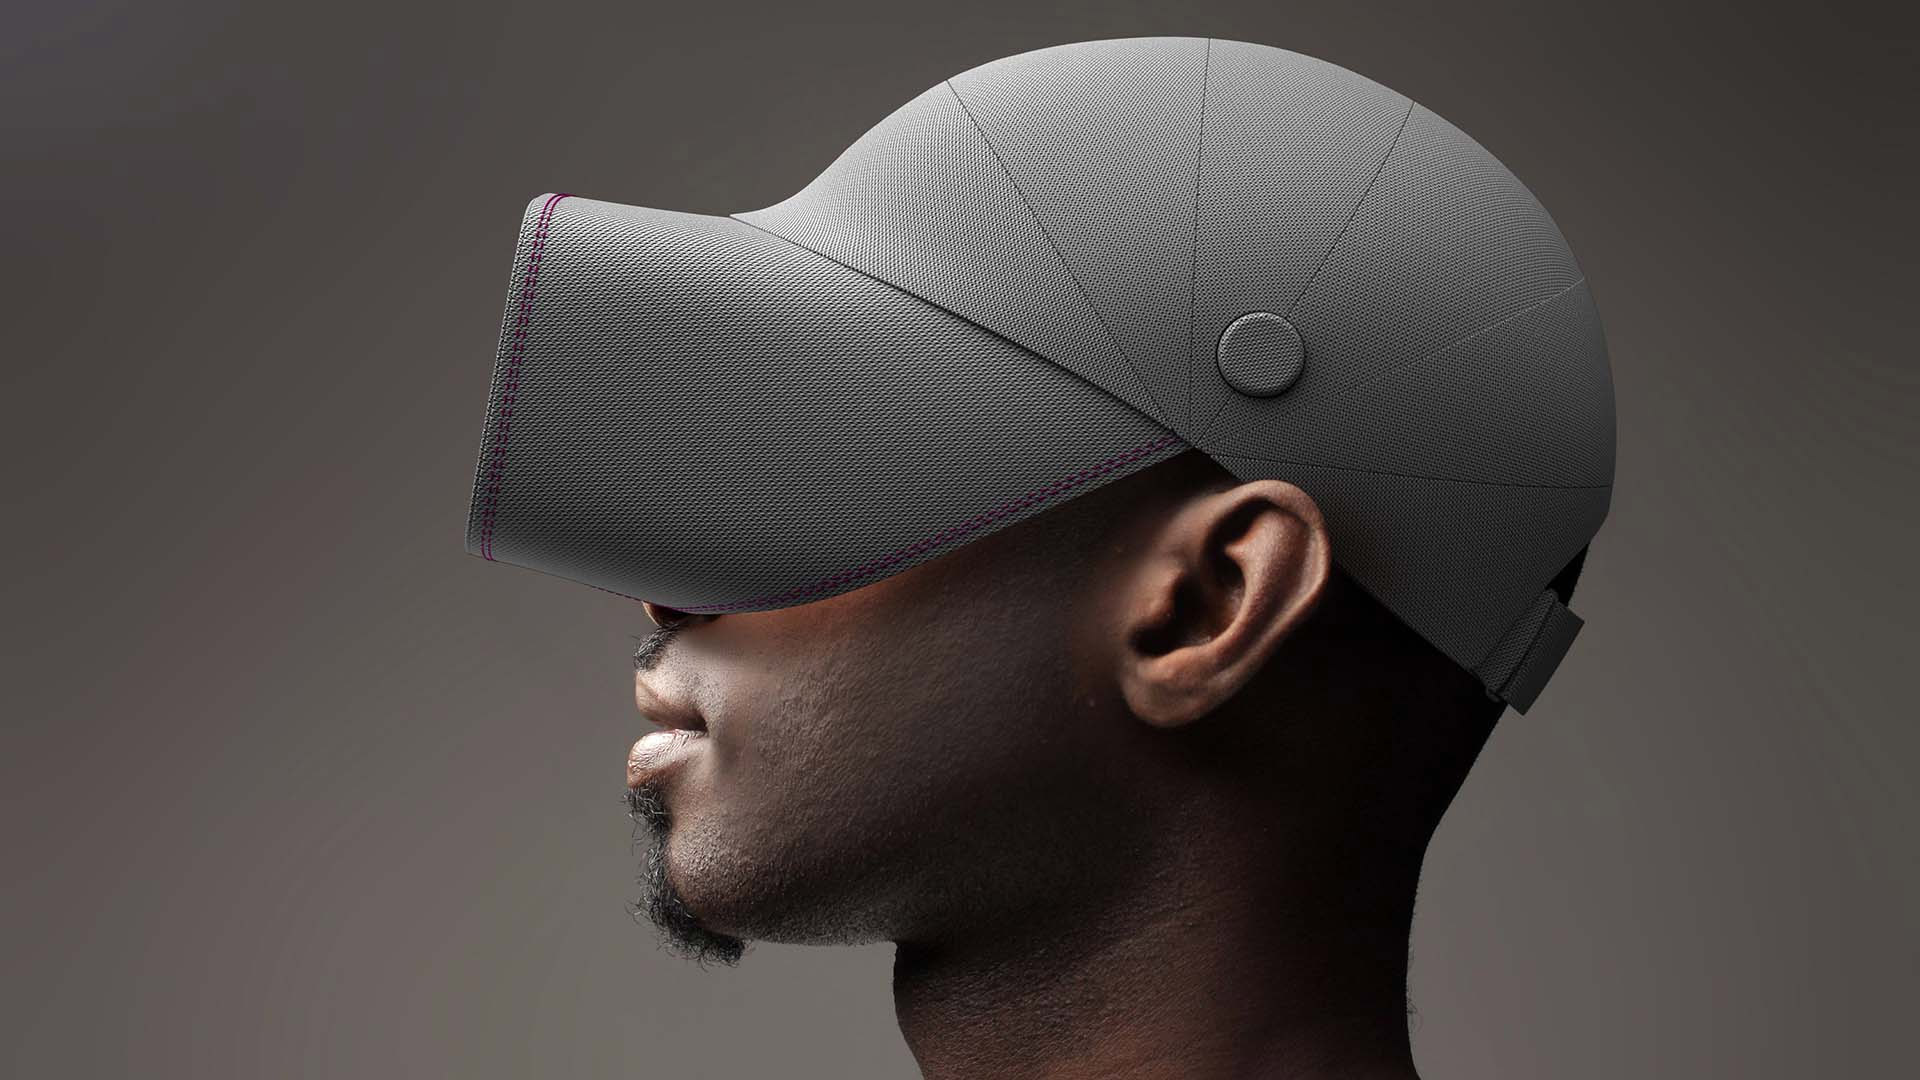 f81389face98 Designers Prototype New Approaches to VR Headset Ergonomics and Input